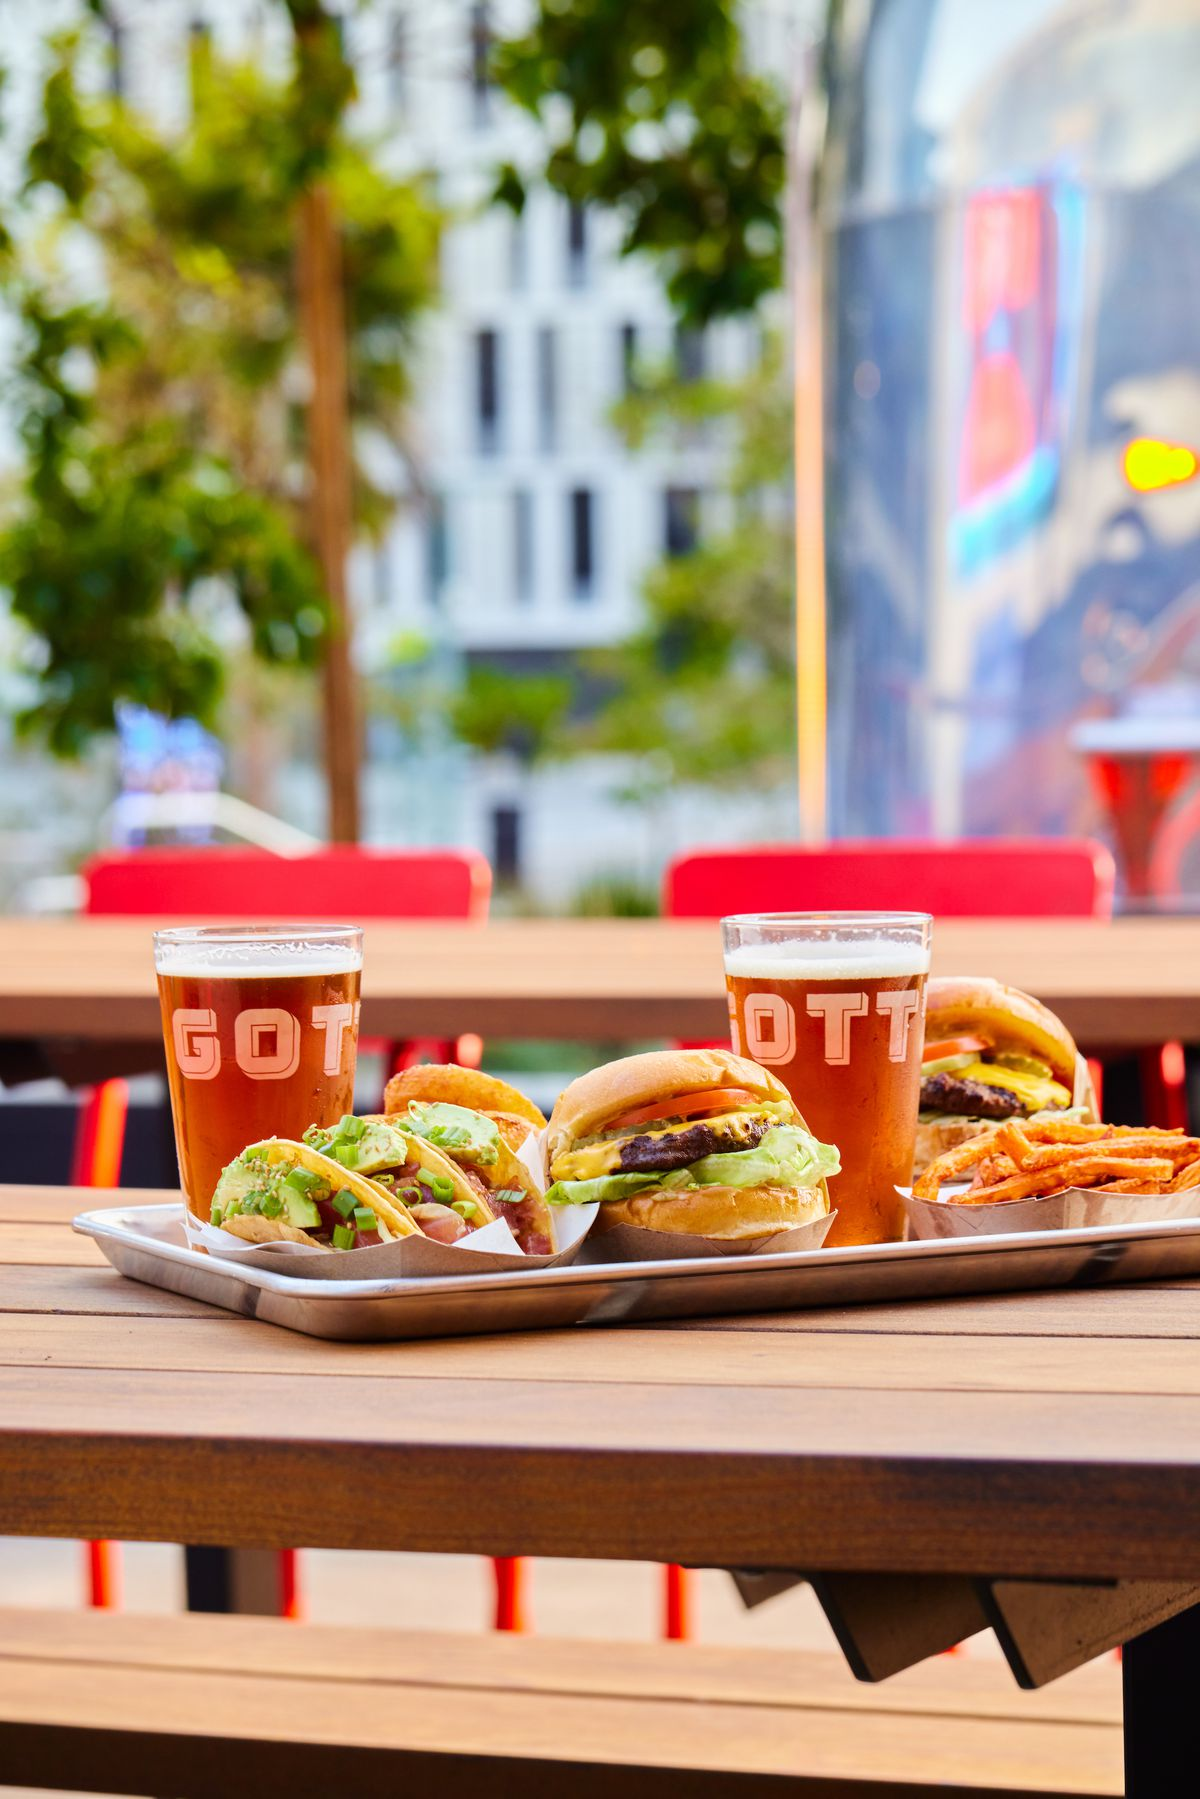 A tray of burgers and beers from Gott's Roadside on a wooden table